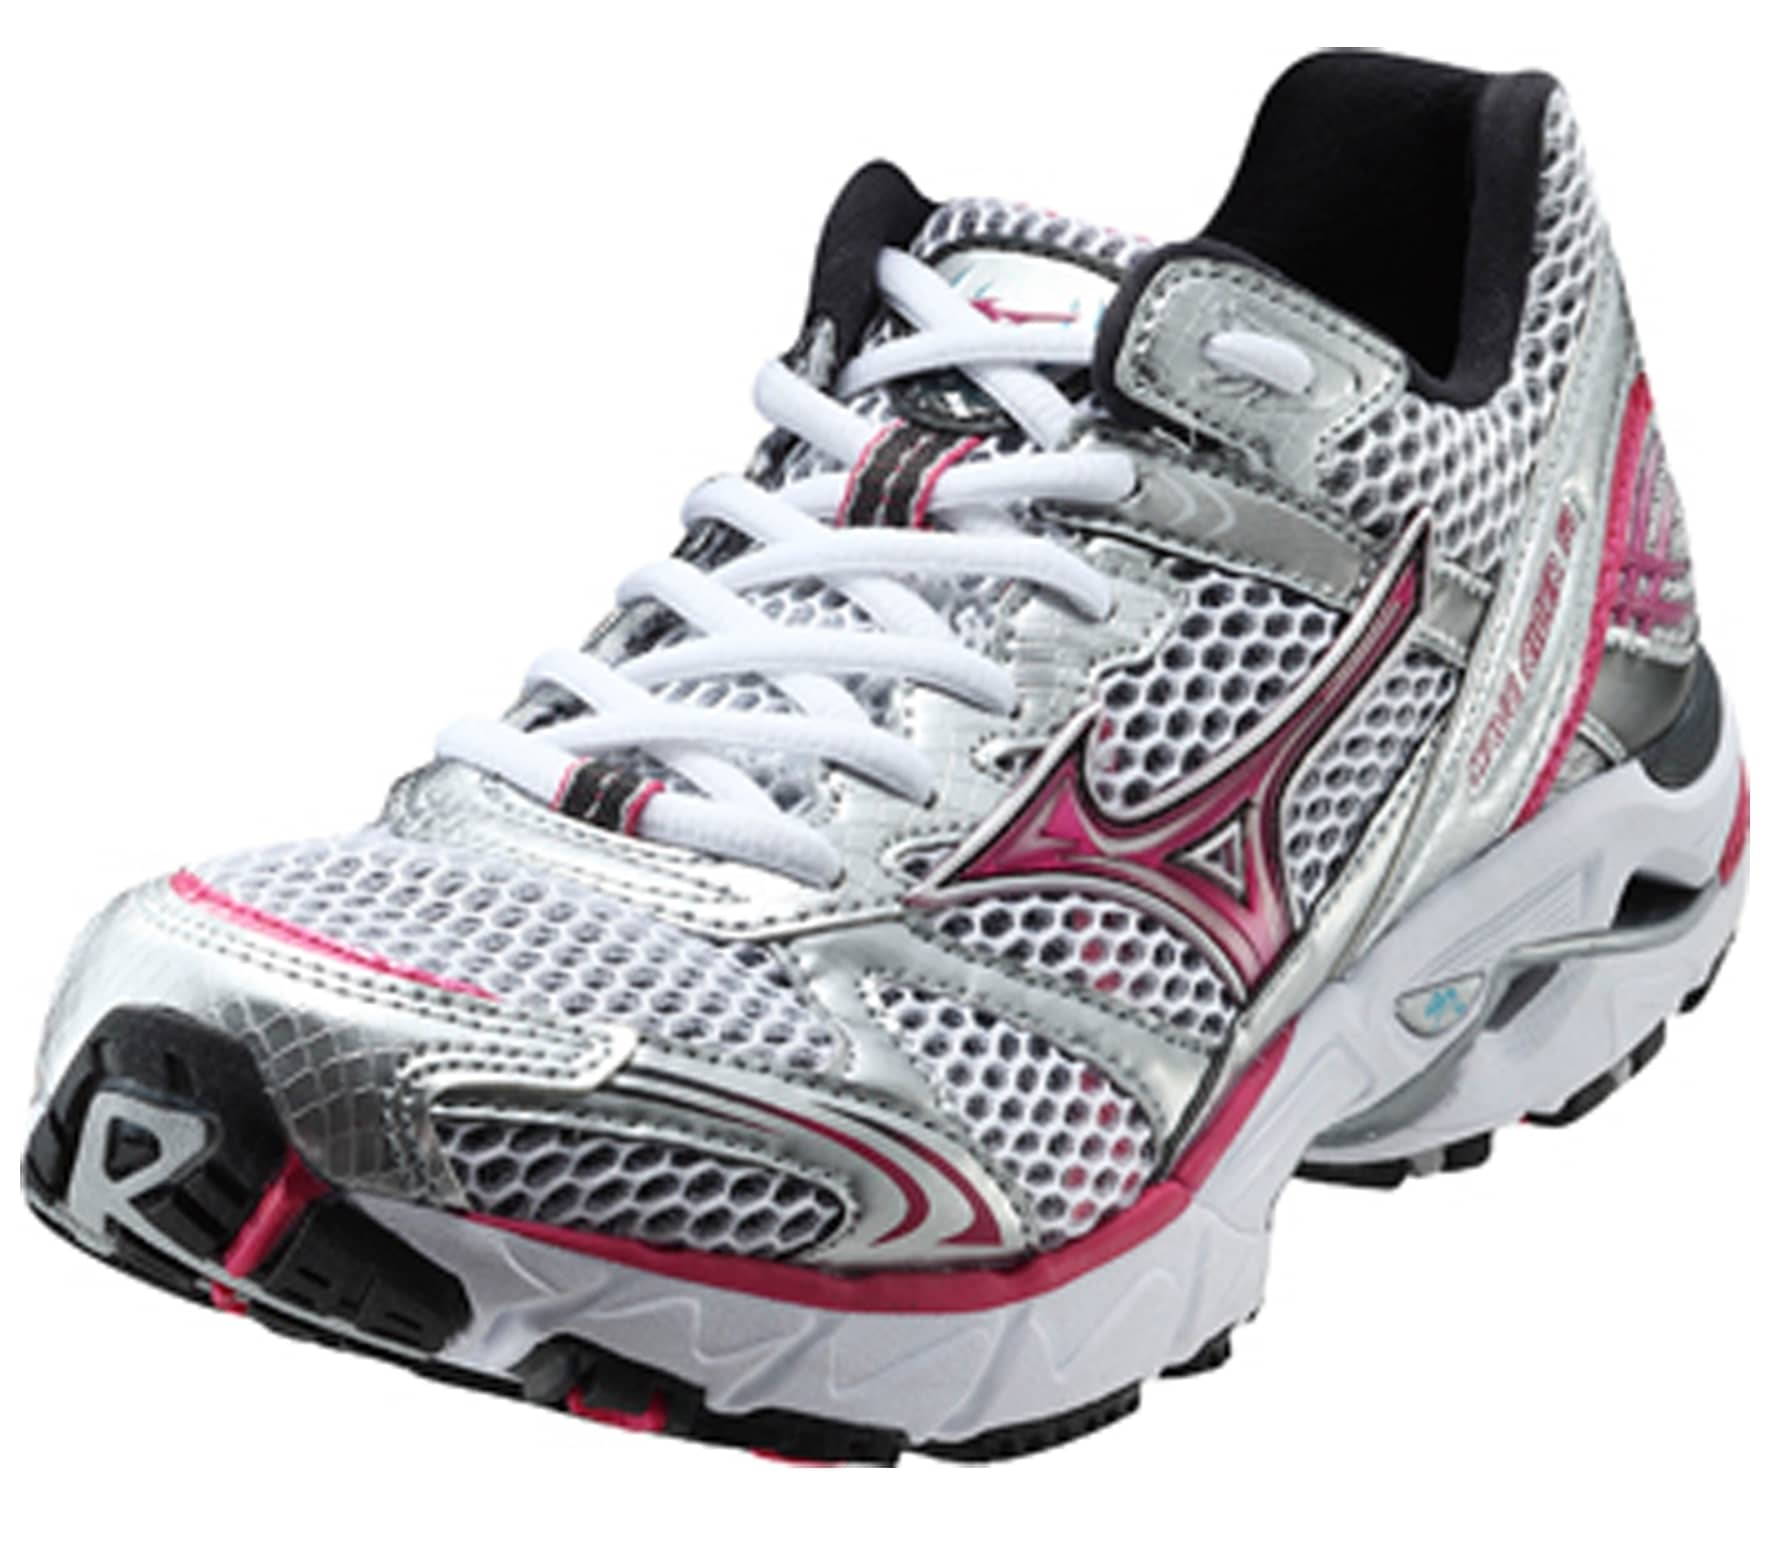 f645420c7a3f mizuno wave rider 14 womens shoes | ventes flash